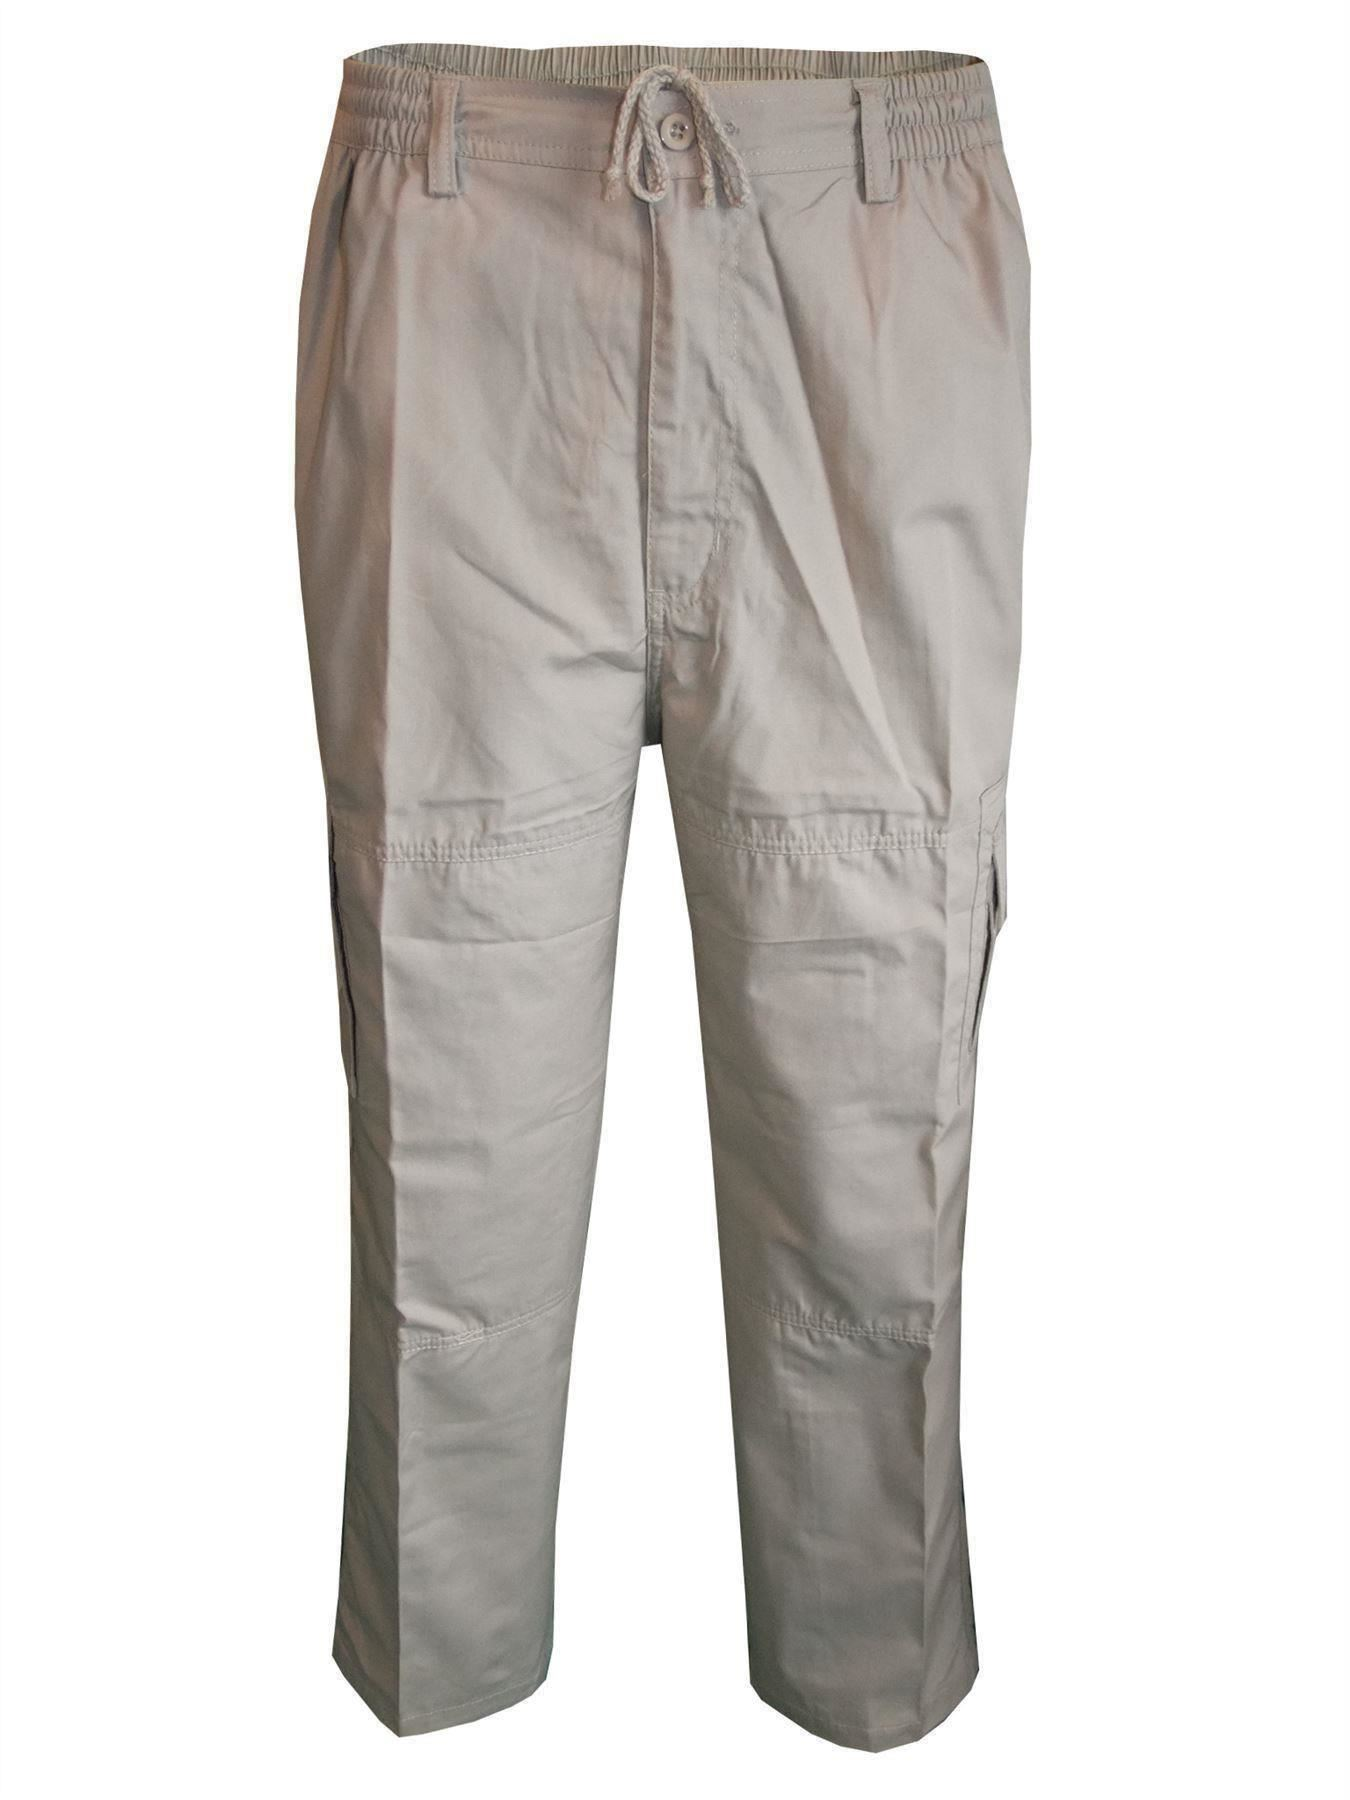 Men-Straight-Trousers-Cargo-Combat-Cotton-Elasticated-Zip-Fly-Casual-Pants-M-3XL thumbnail 4